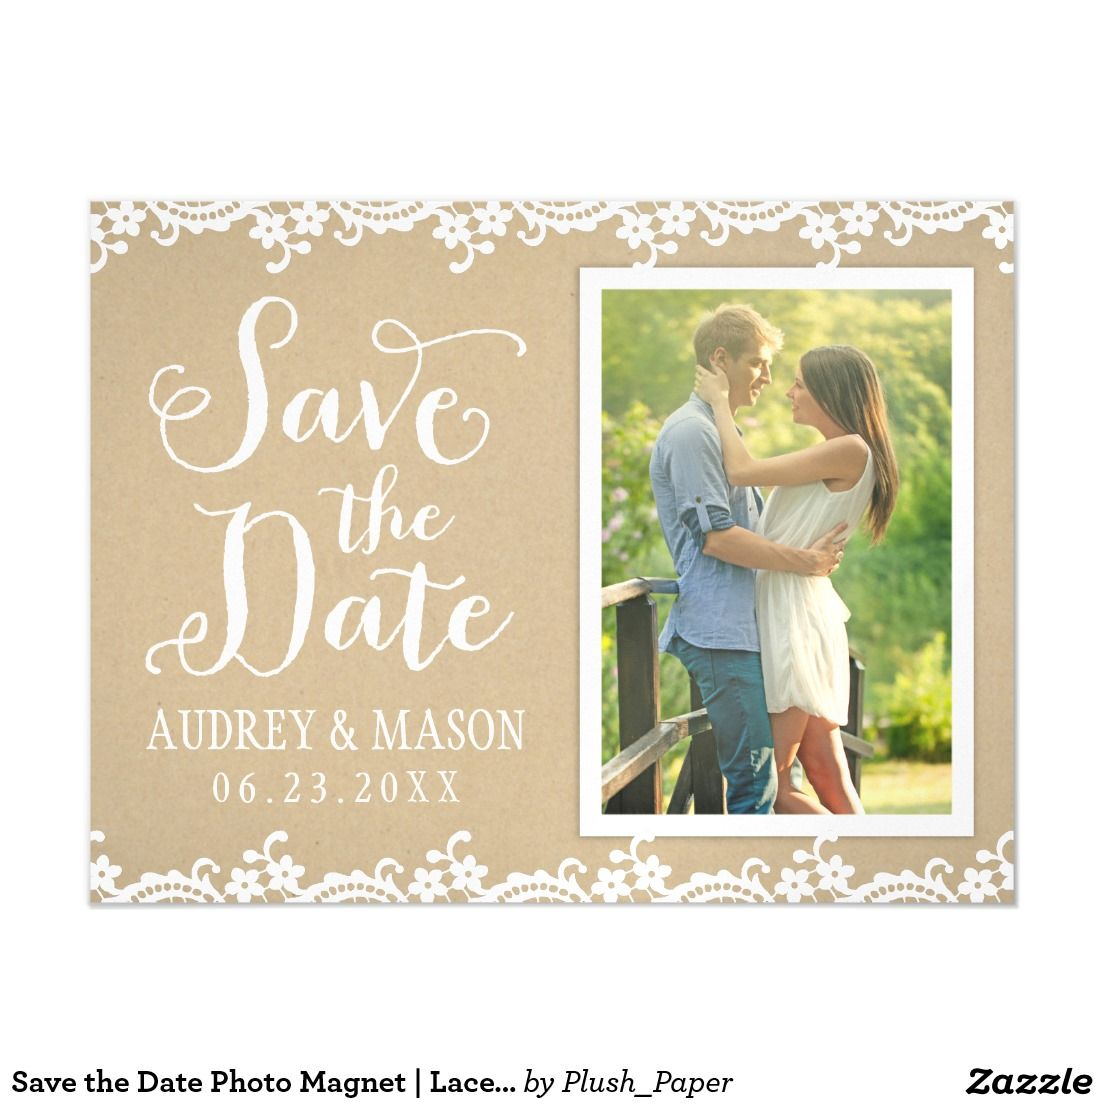 "Save the Date Photo Magnet | Lace and Kraft Magnetic Card Wedding announcement magnets feature a portrait engagement photo, ""Save the Date"" in script, a charming illustrated border design of white floral and dotted lace, and a background with a rustic kraft brown paper textured appearance. Two sided design."